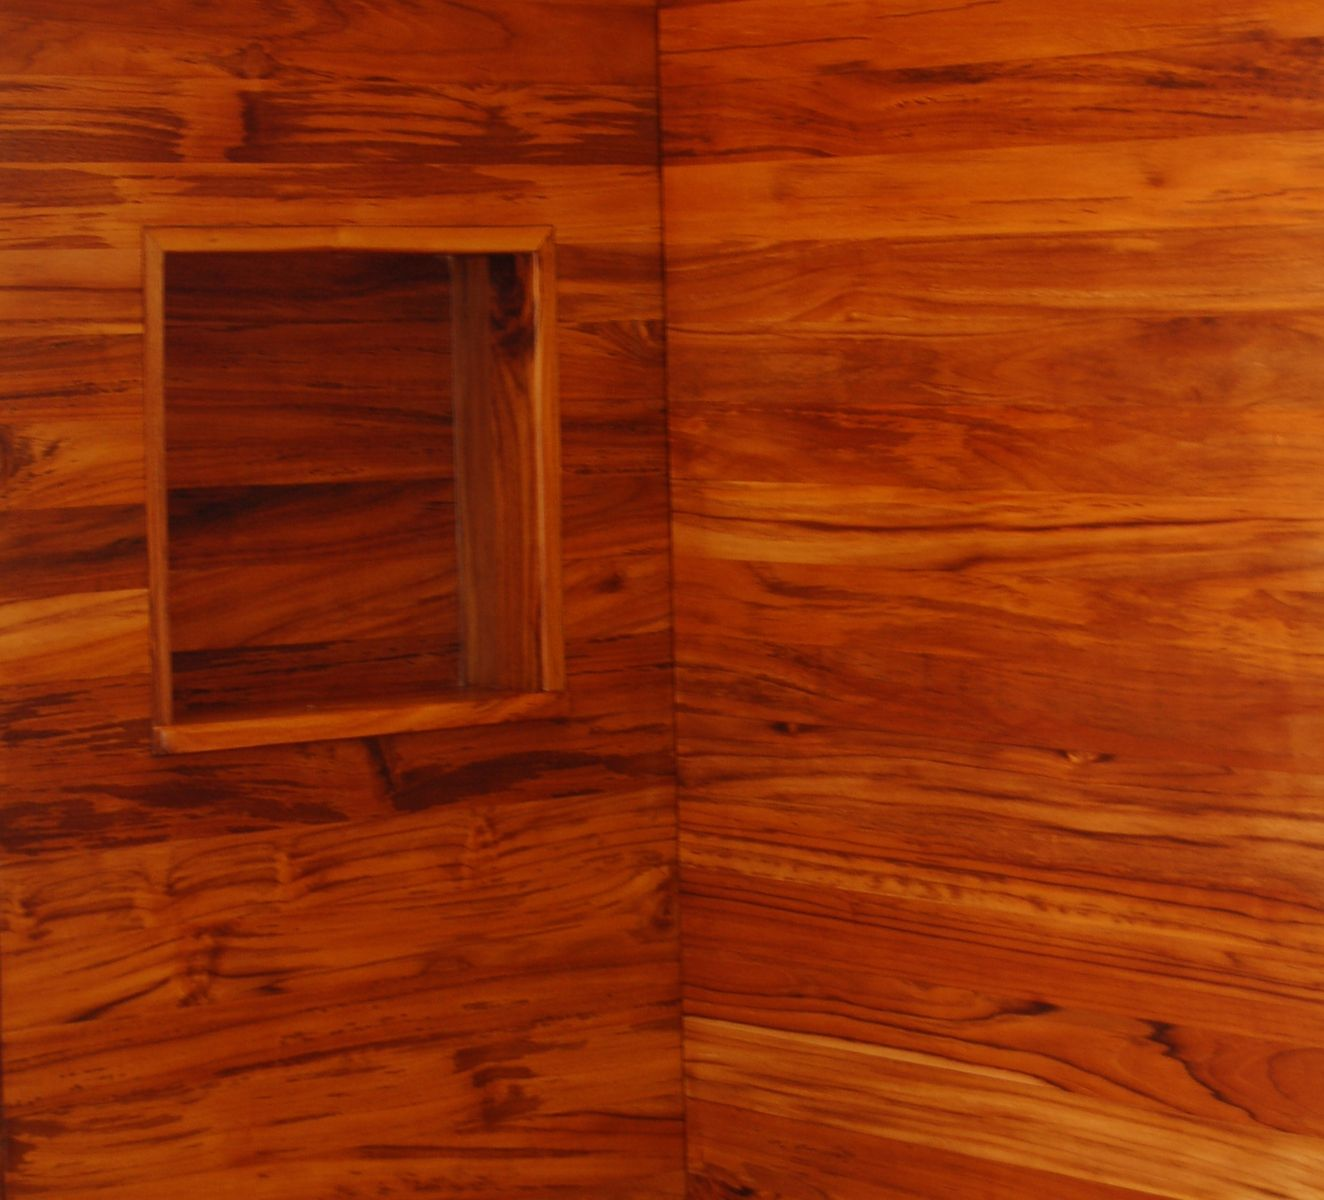 Hand Made Shower Enclosure To Match Wooden Bathtubs In Plantation Teak By Bath In Wood Of Maine